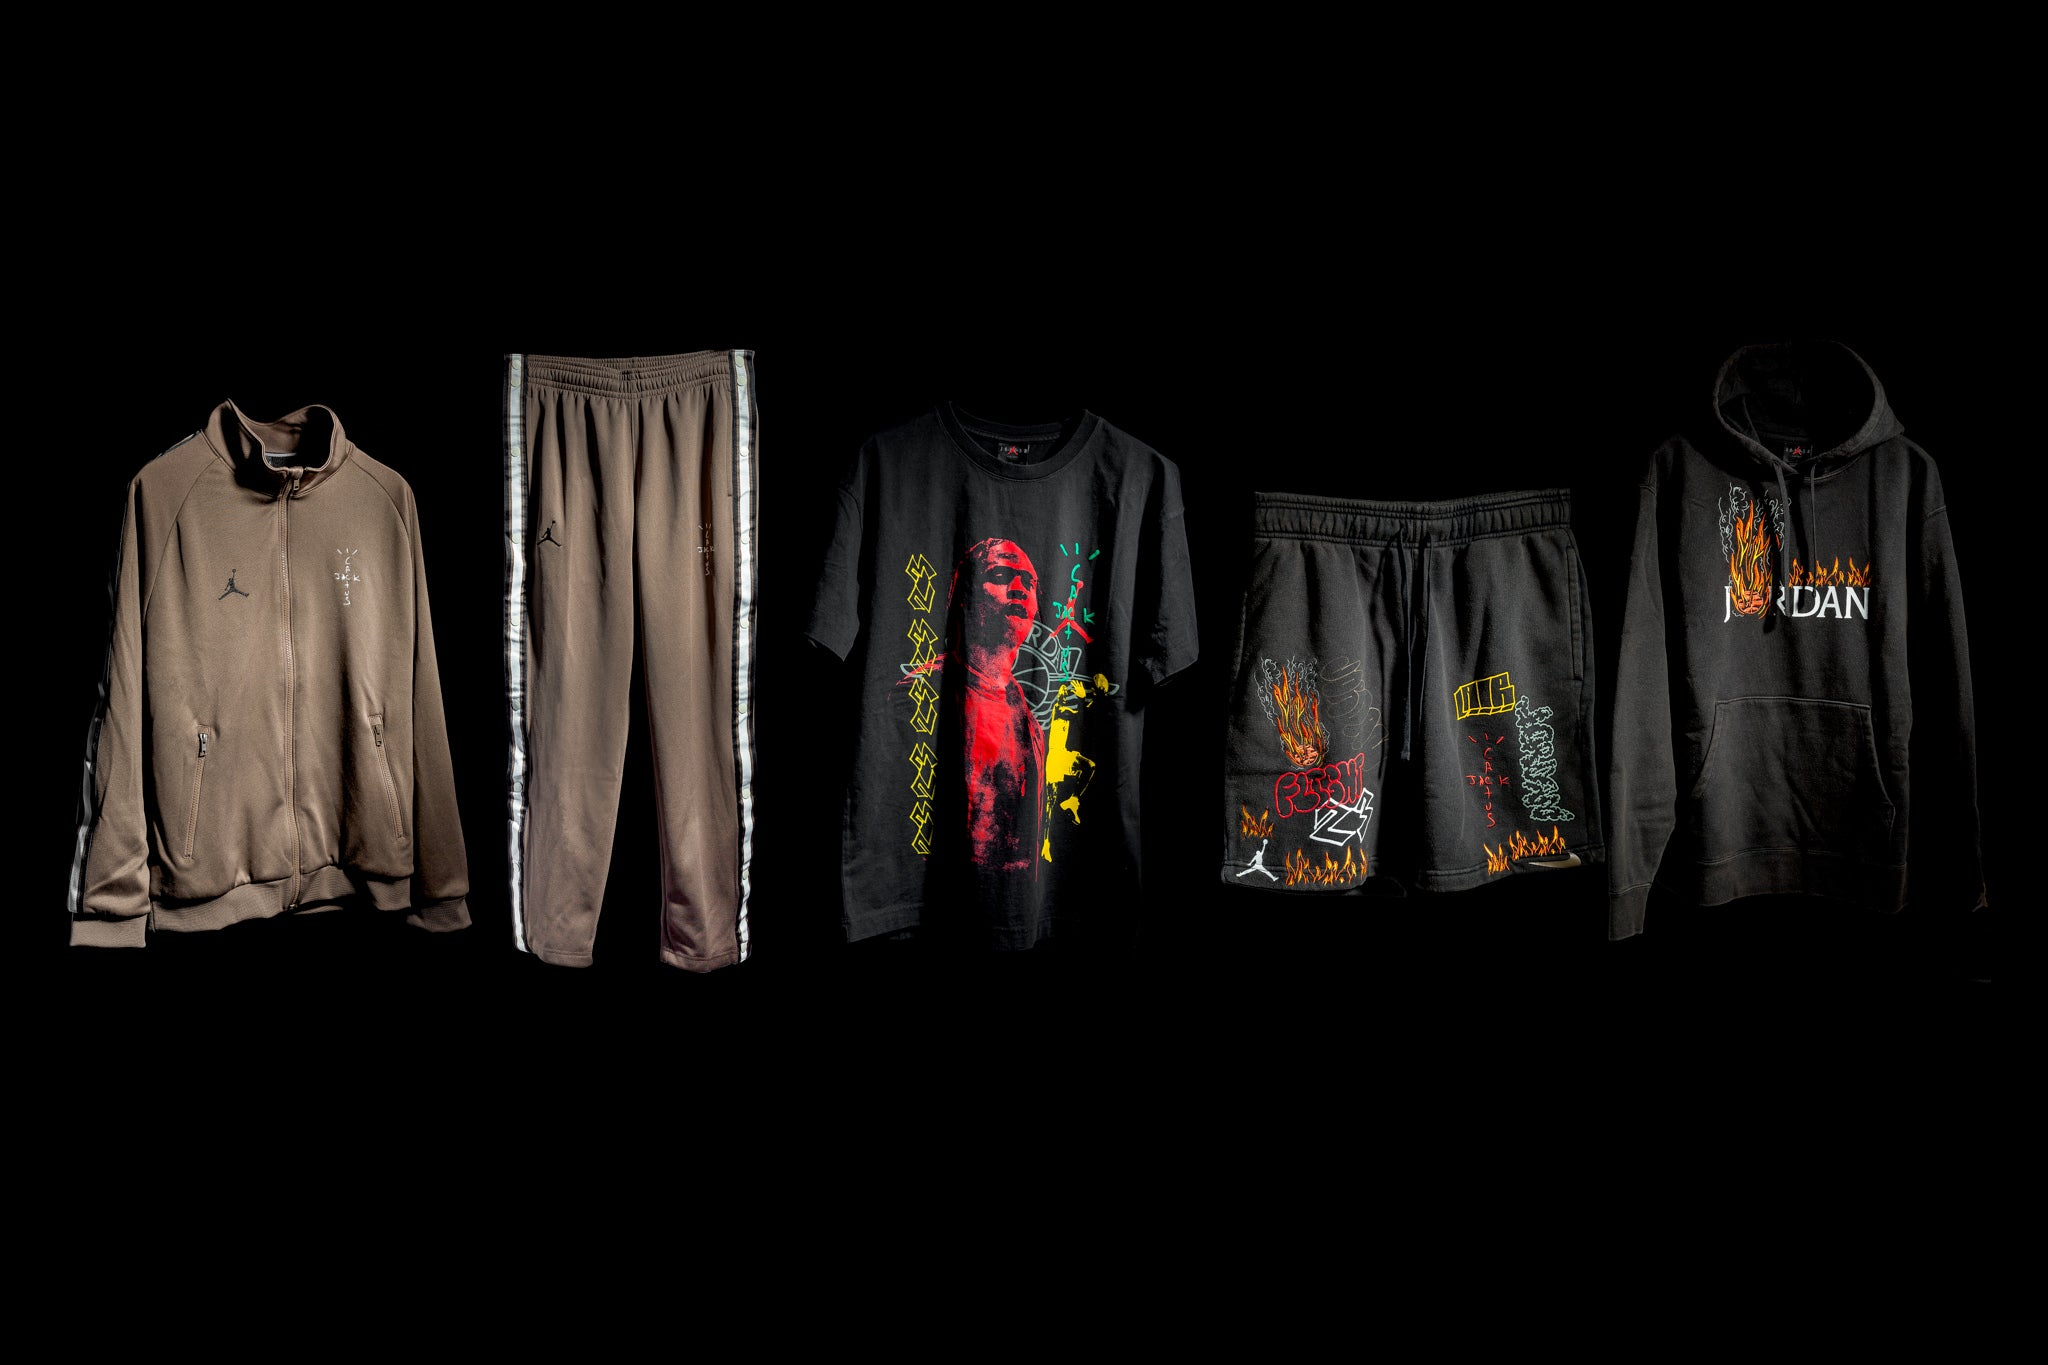 256e4aab To compliment the Cactus Jack Air Jordan 1, Travis Scott and Jordan design  a five piece apparel collection loaded with La Flame's merch-styled  graphics.